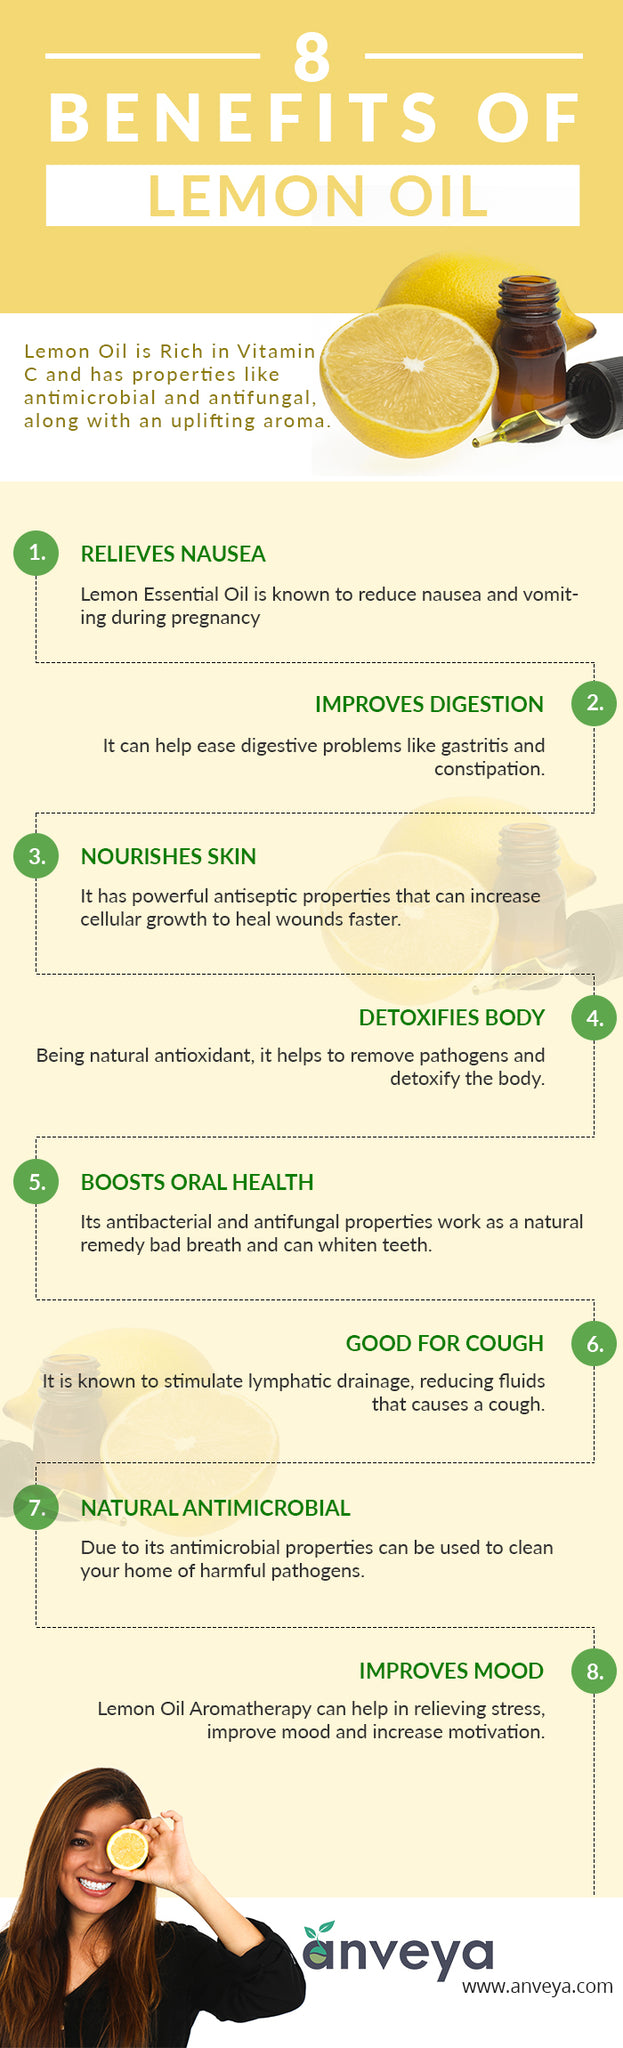 8 Benefits of Lemon Oil